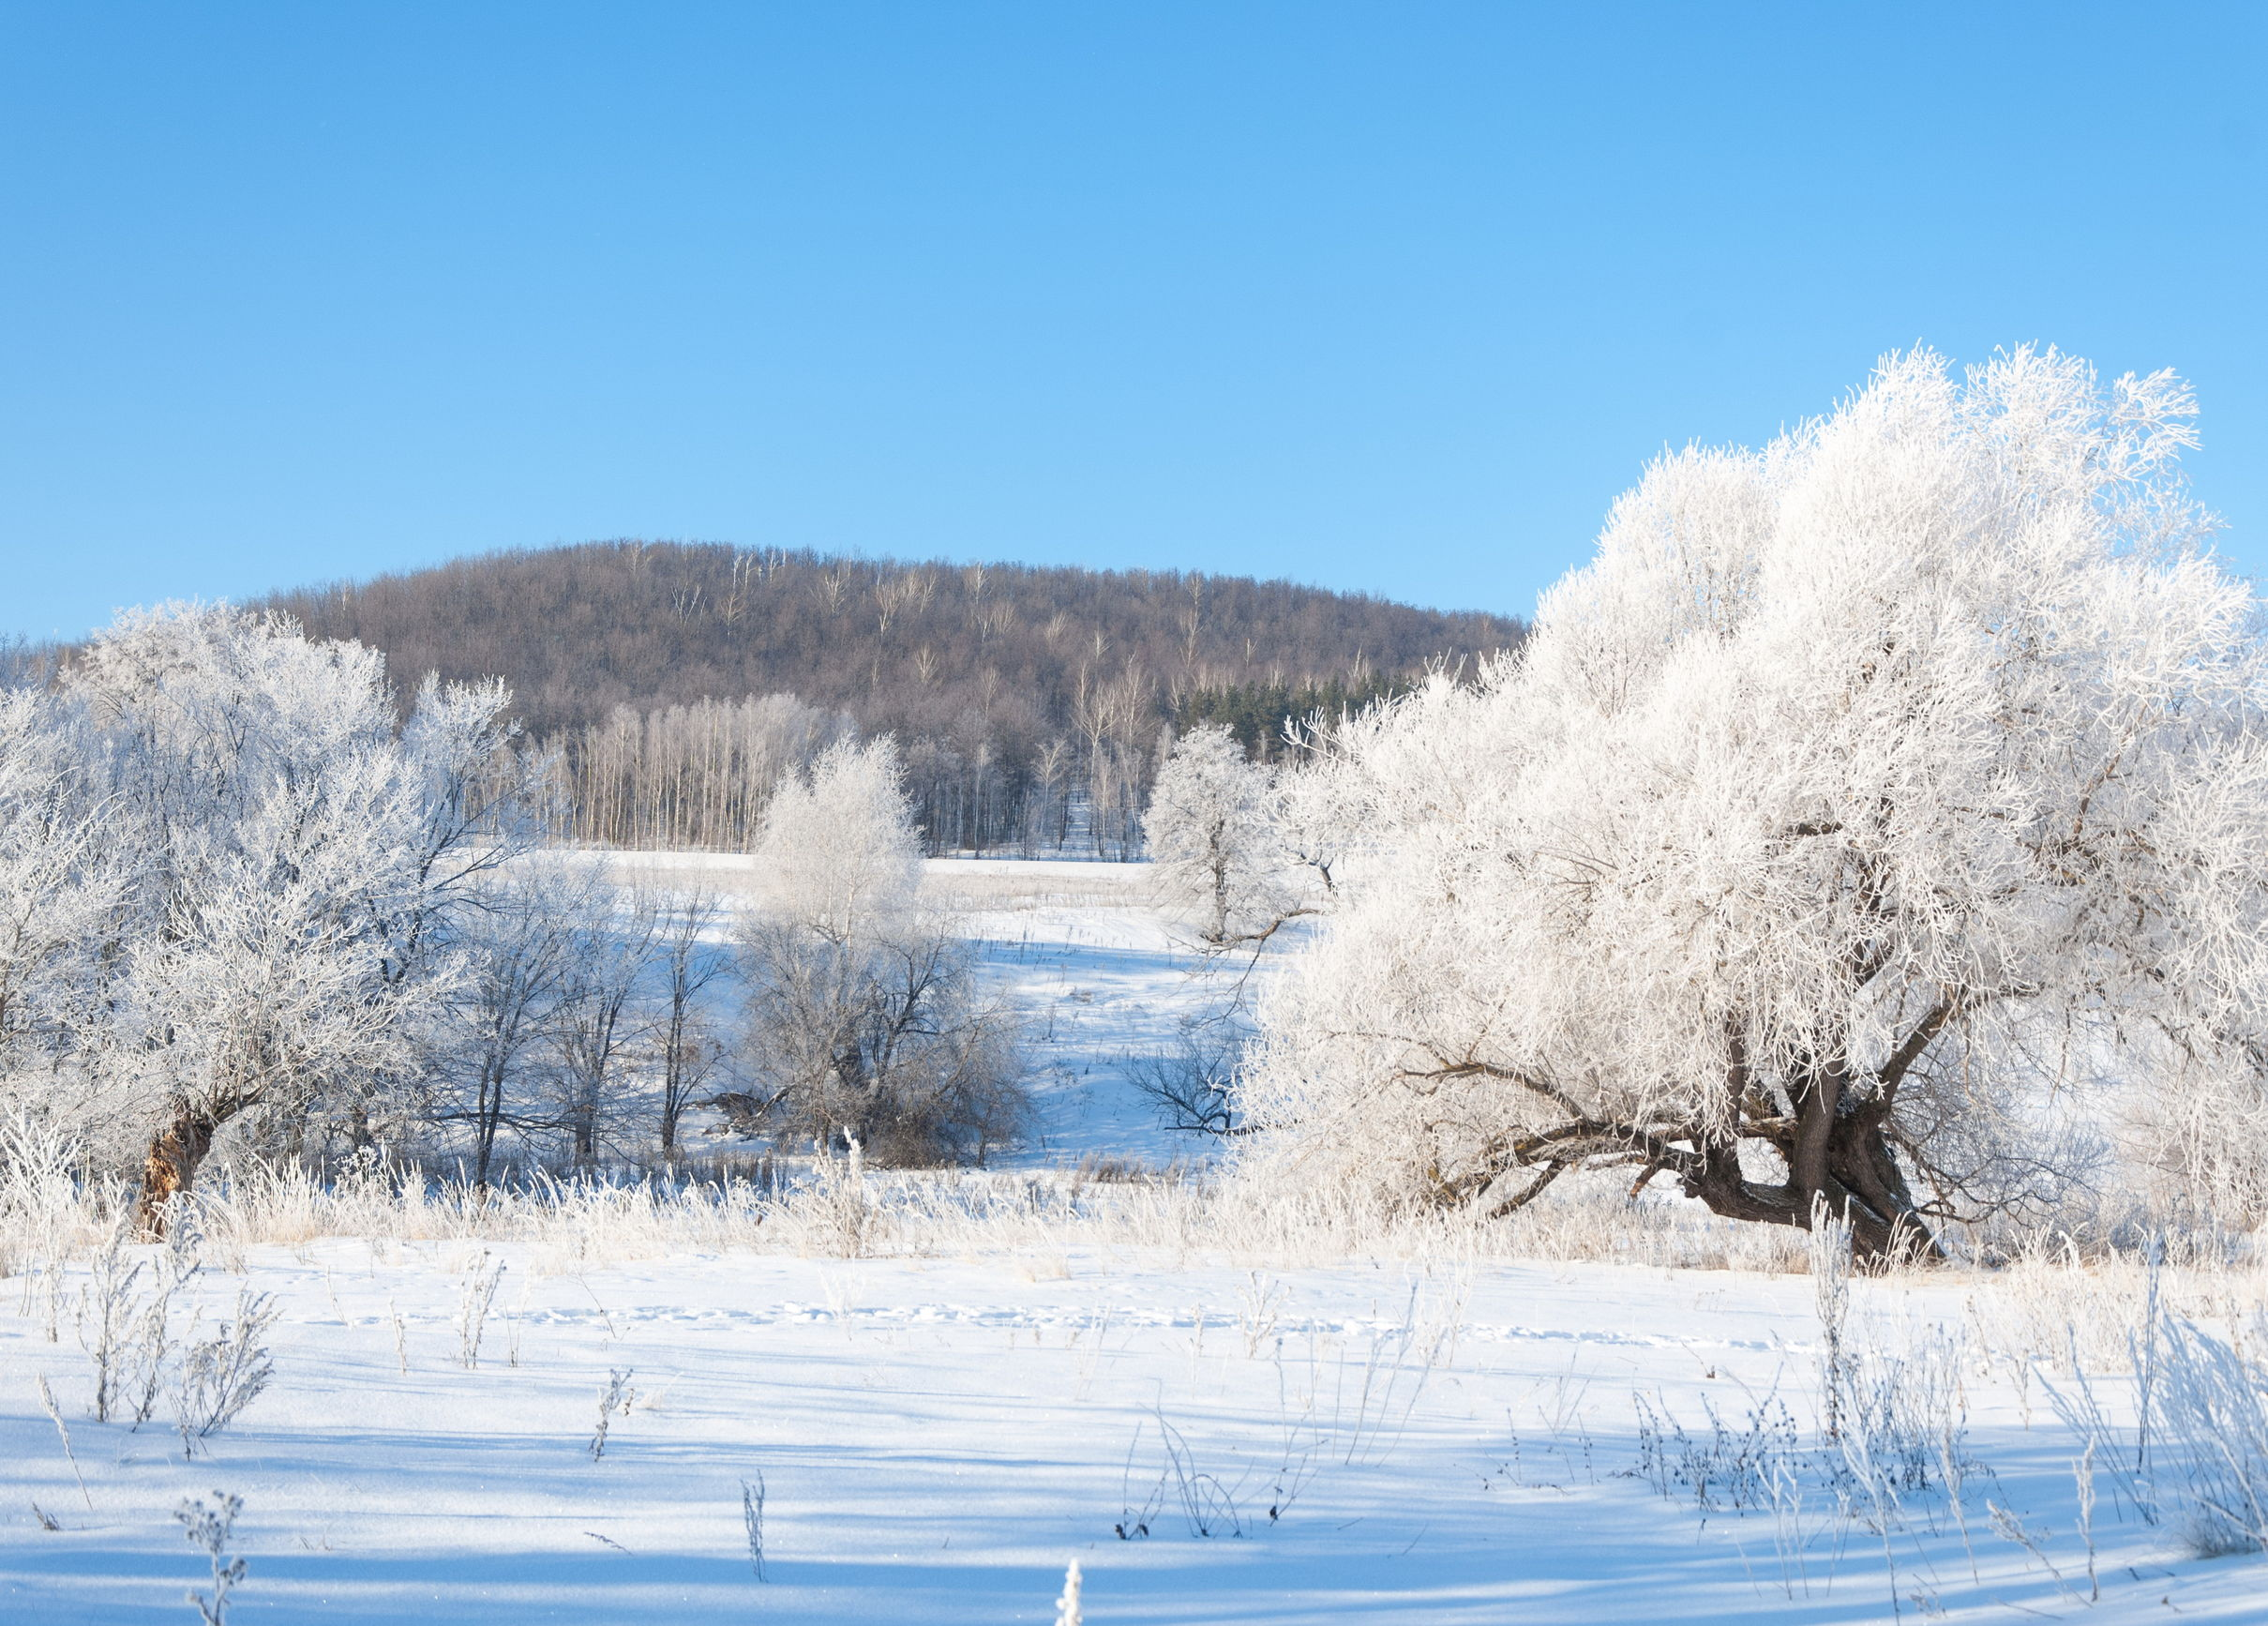 Imagine living in Siberia with temperatures down to minus 50